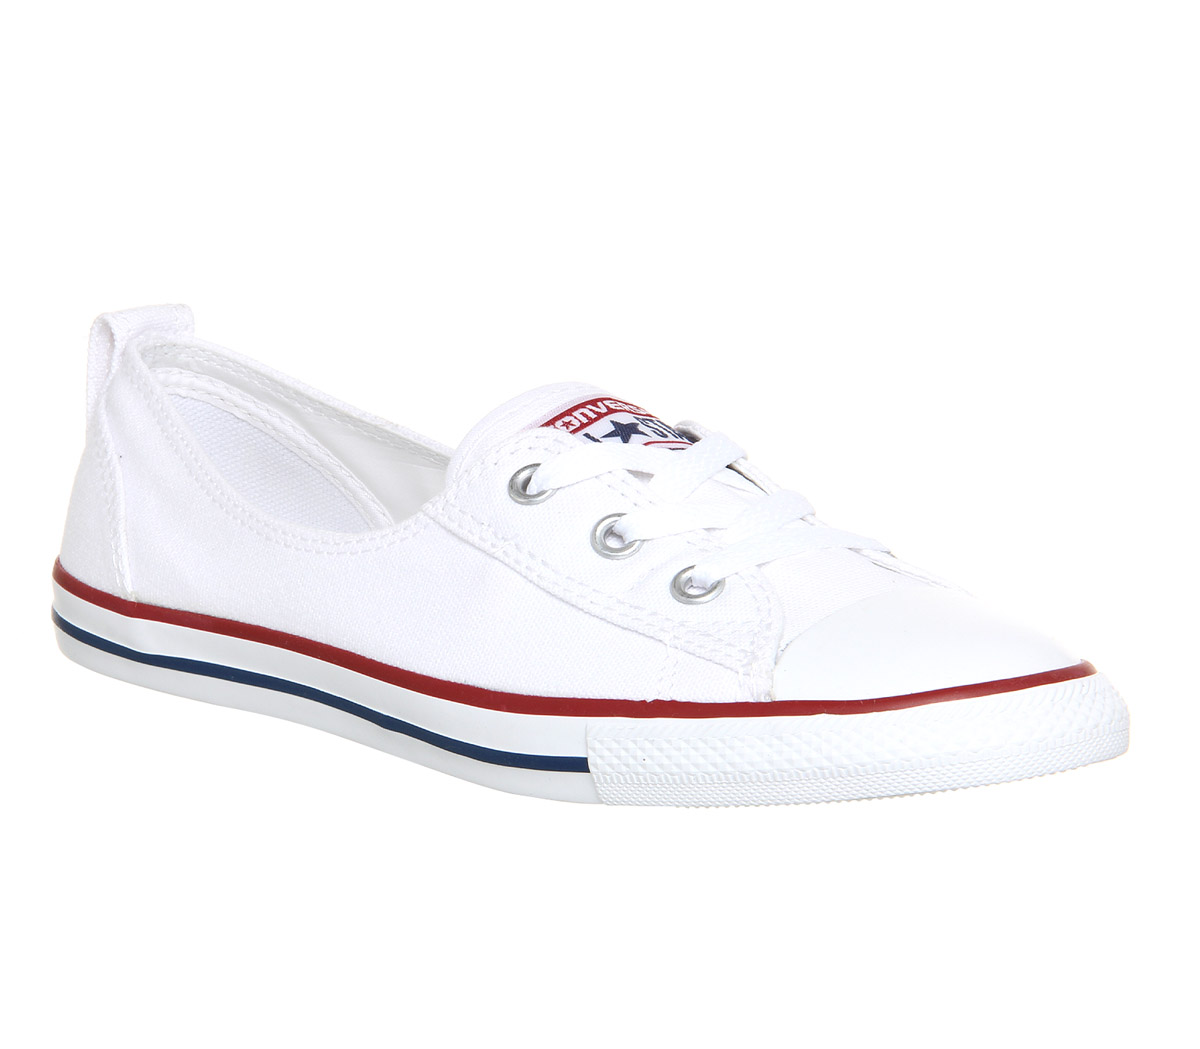 White Converse Shoes Sale Uk